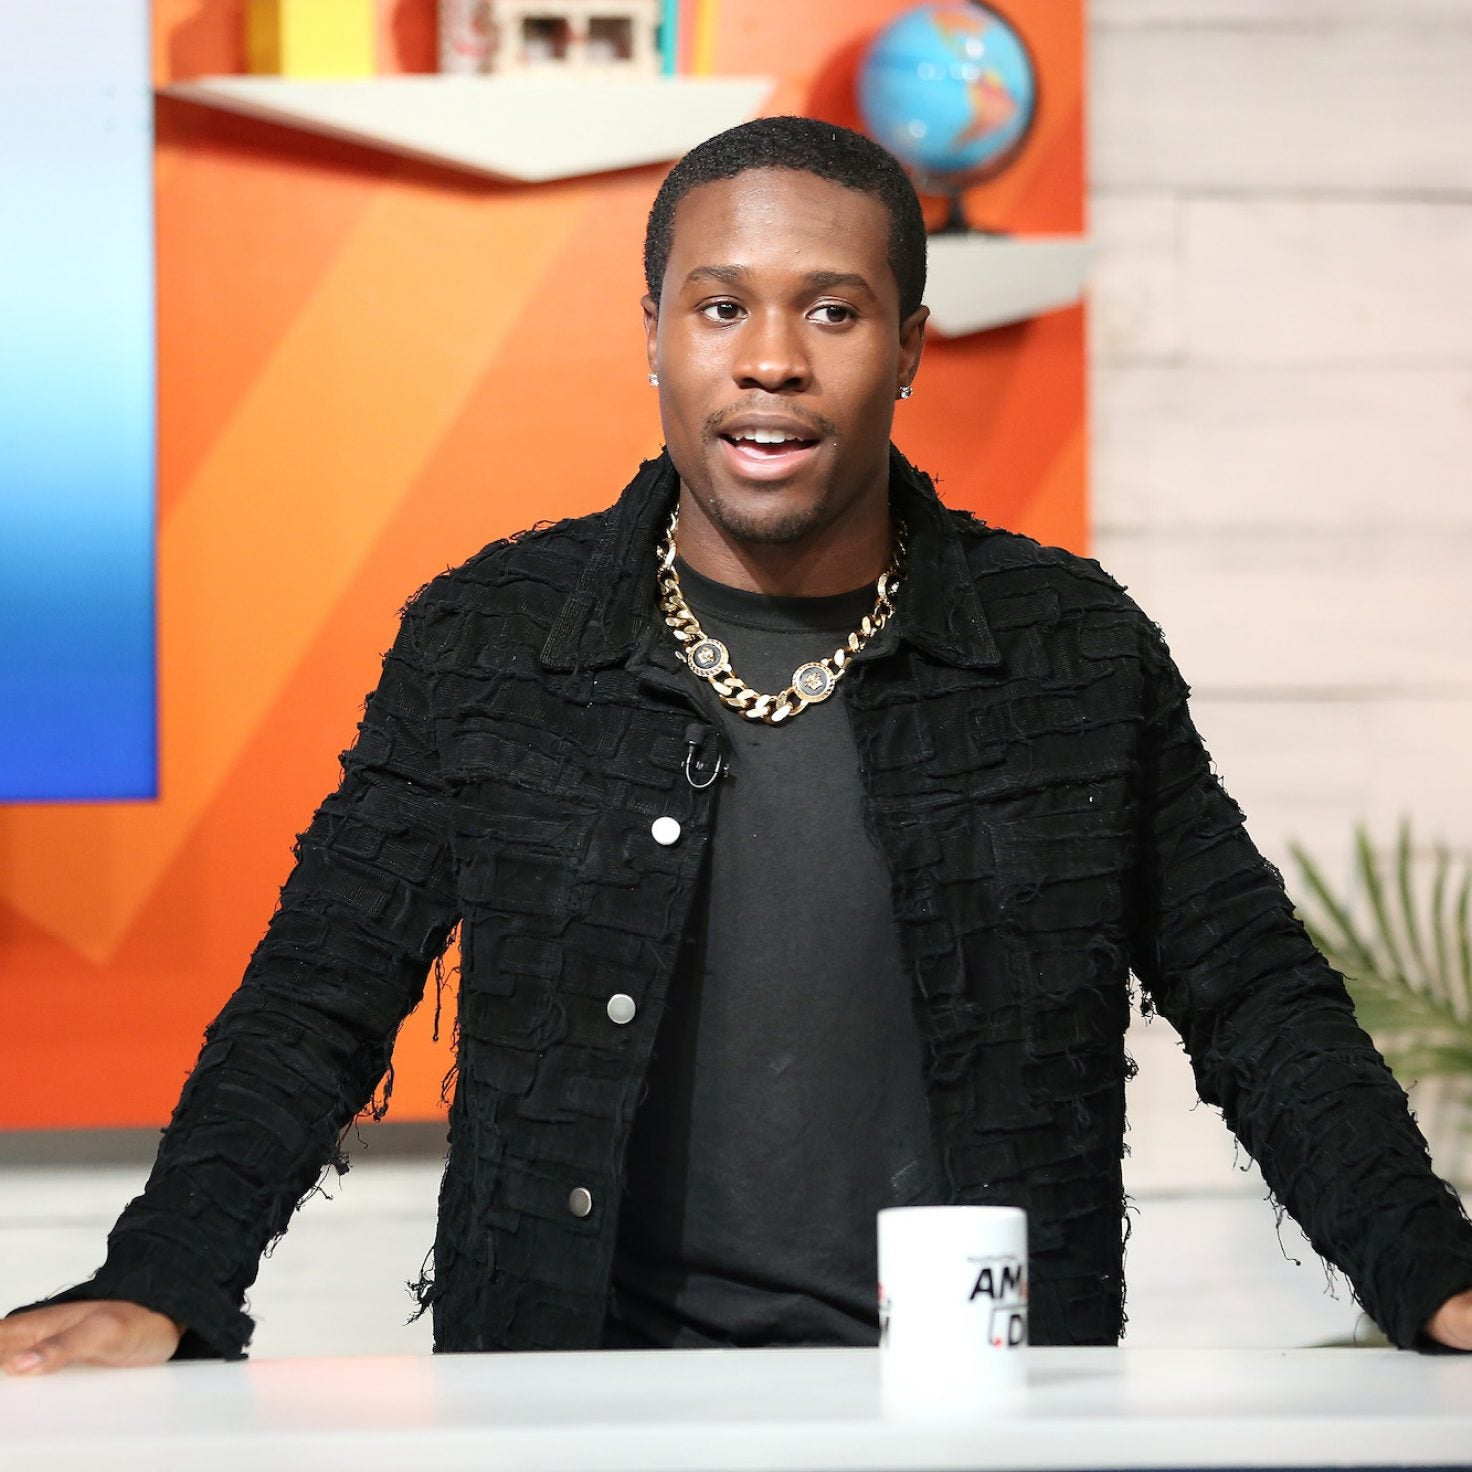 Shameik Moore Apologizes For Controversial Police Brutality Tweets: 'It Was Wrong Timing'